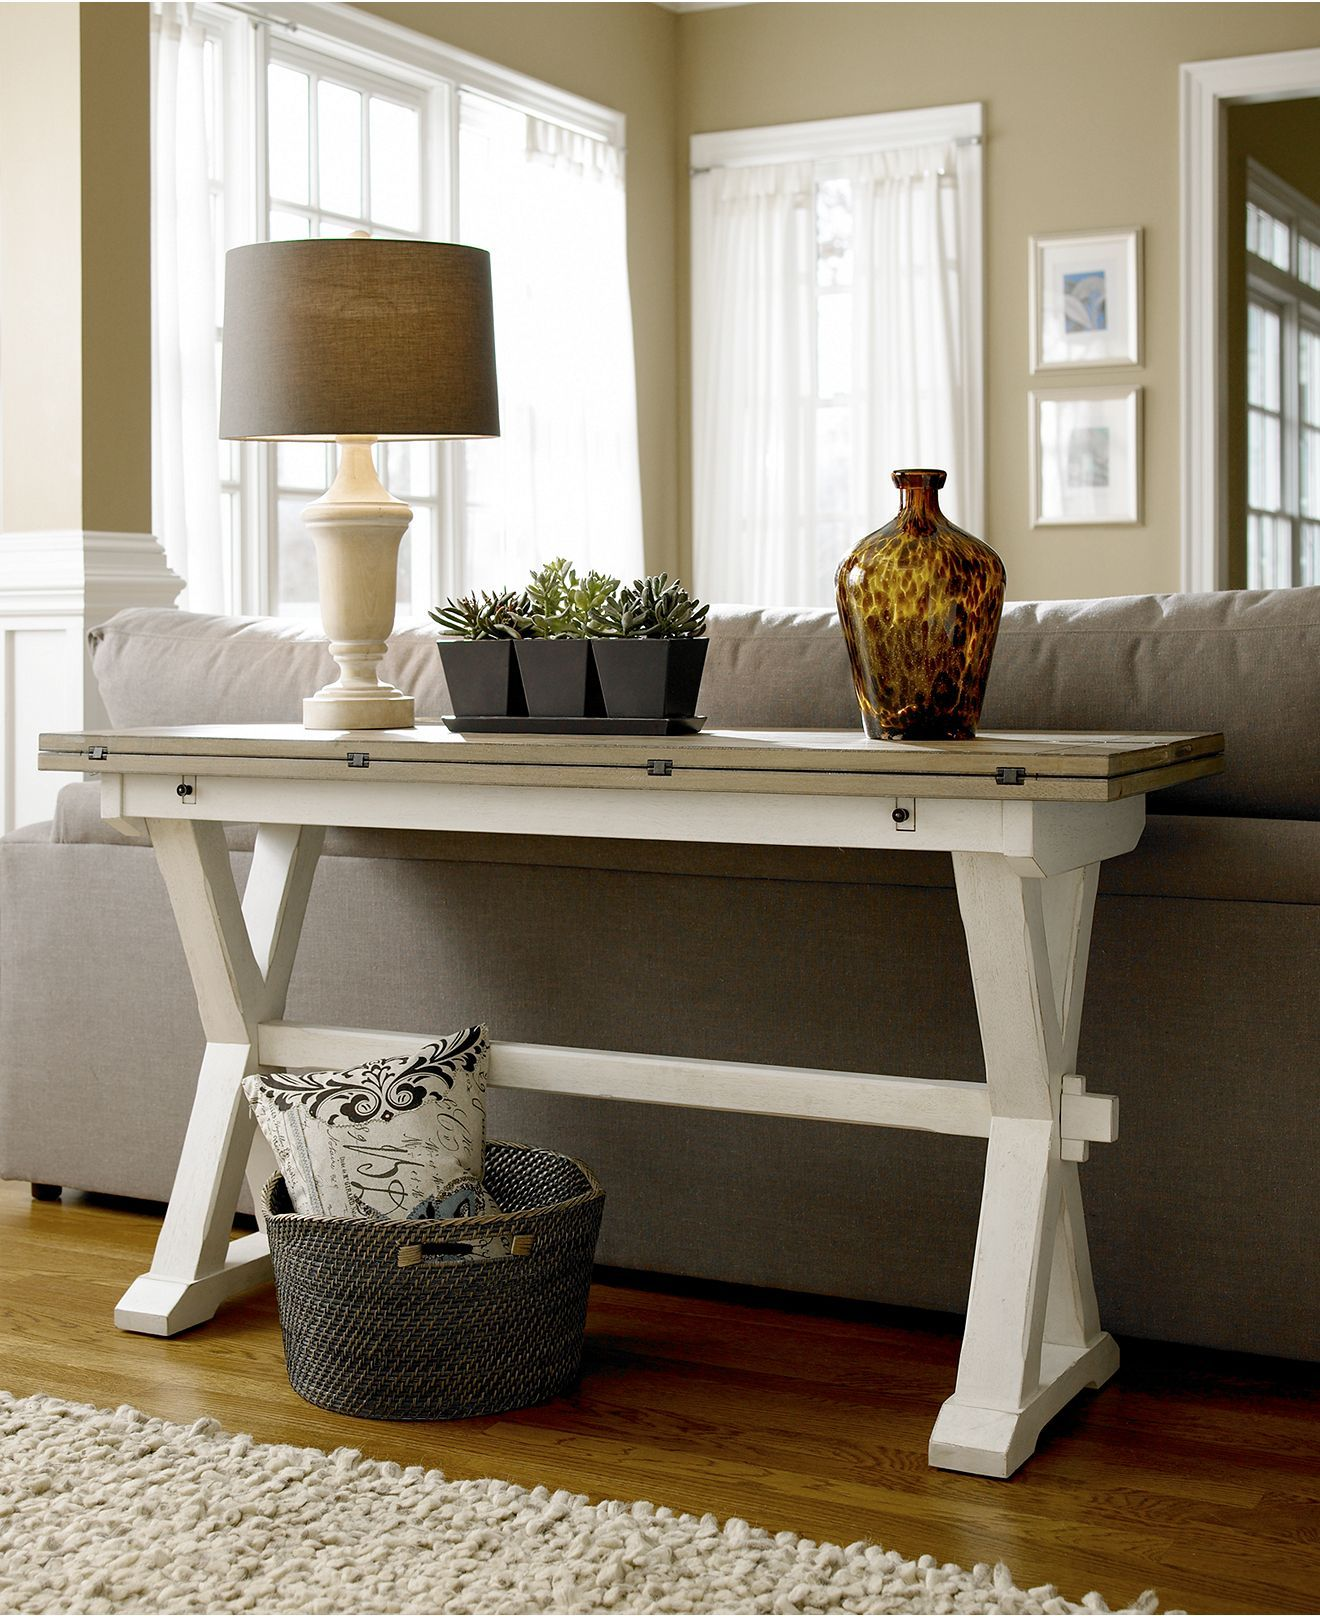 Peachy Versatile Console Table With A Fold Out Leaf Use As A Desk Ncnpc Chair Design For Home Ncnpcorg